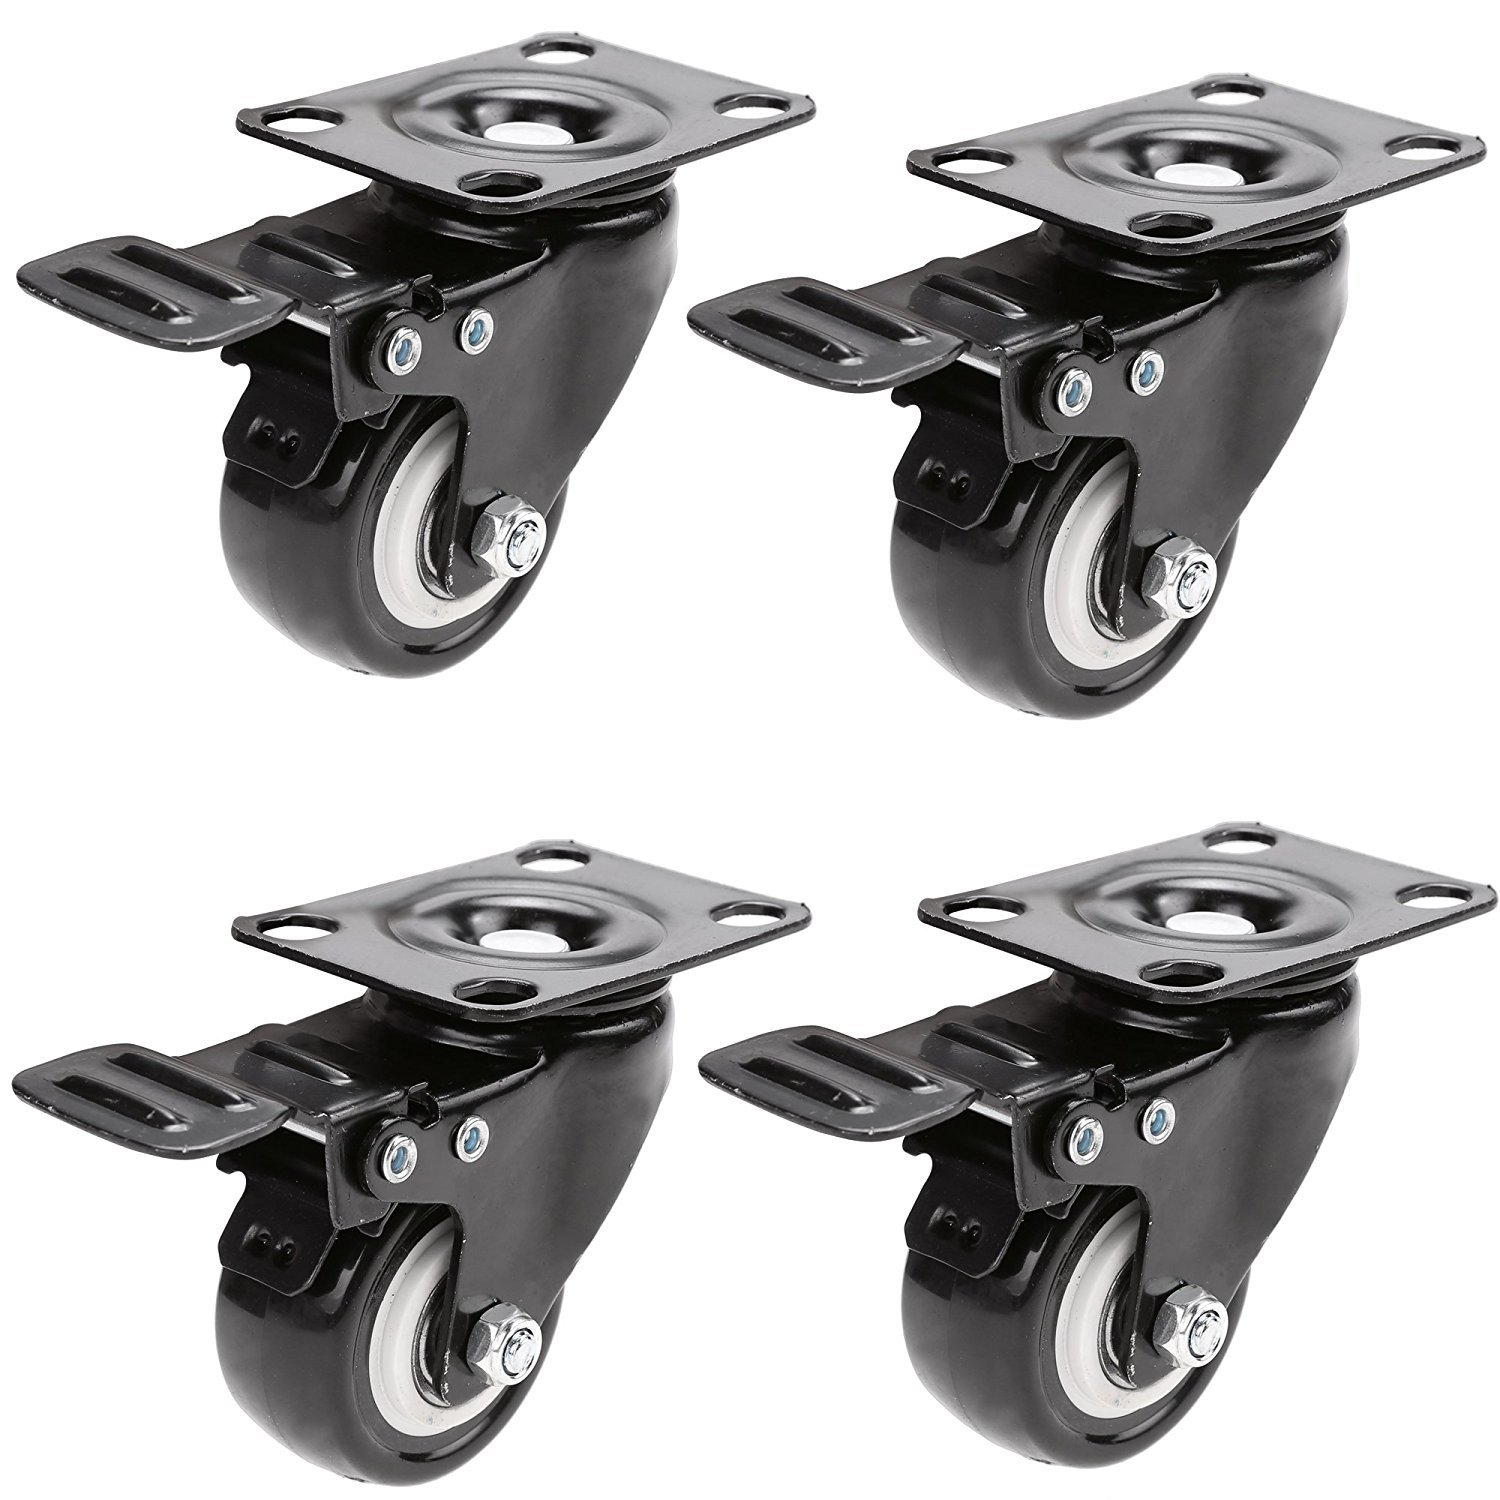 Caster wheels 4 Pack 2'' Heavy Duty Polyurethane PU Swivel Casters 360 Degree Top Plat with Brakes Casters Replacement Bearing 110lb Each, Black